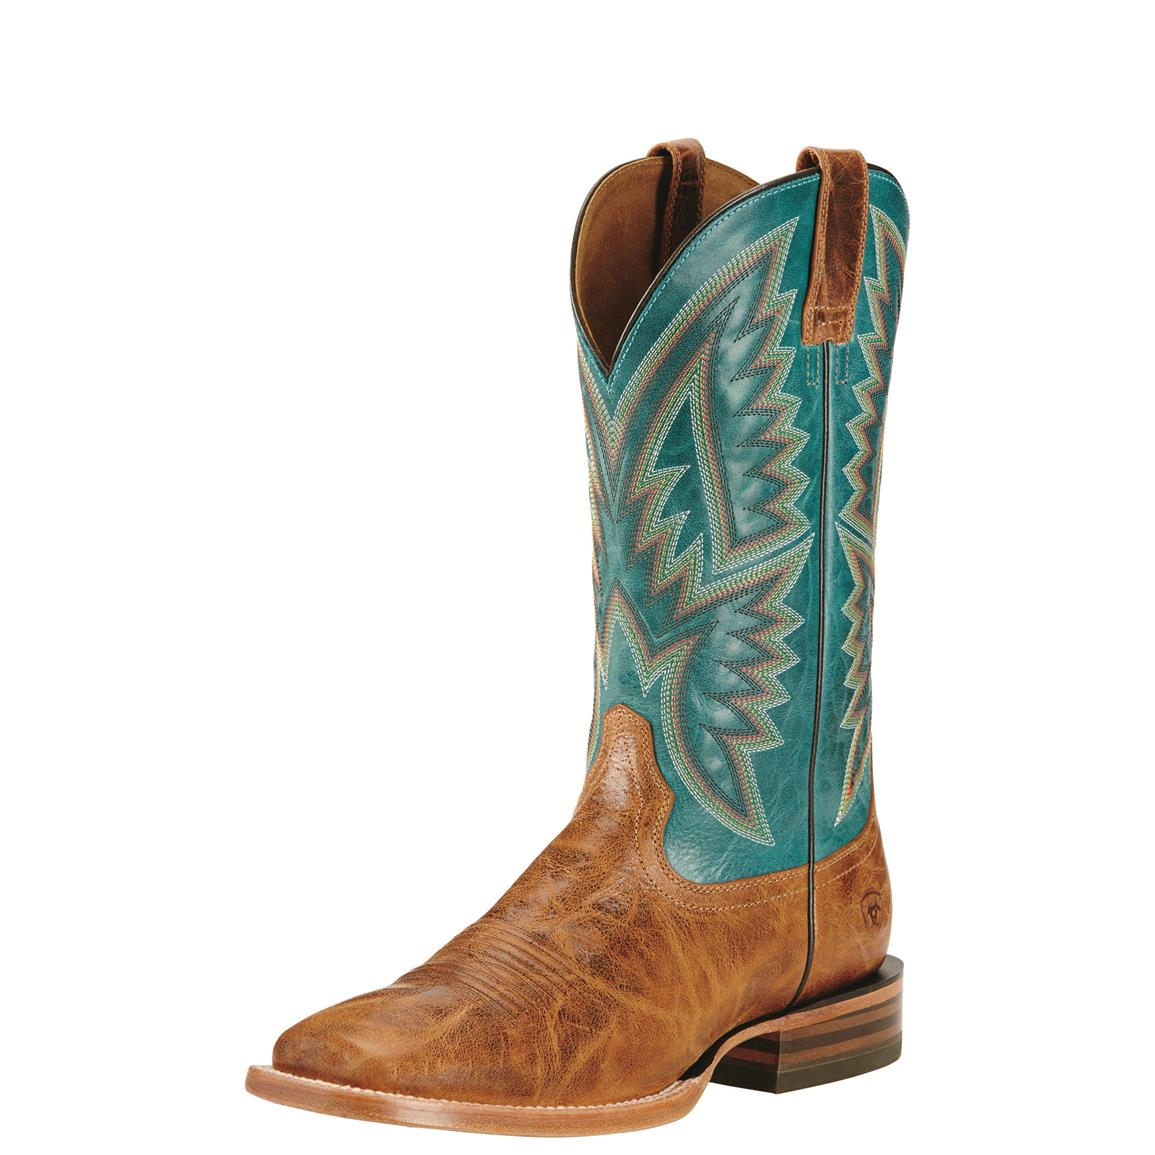 Ariat Men's Hesston Western Boots, Tan/Teal Blue